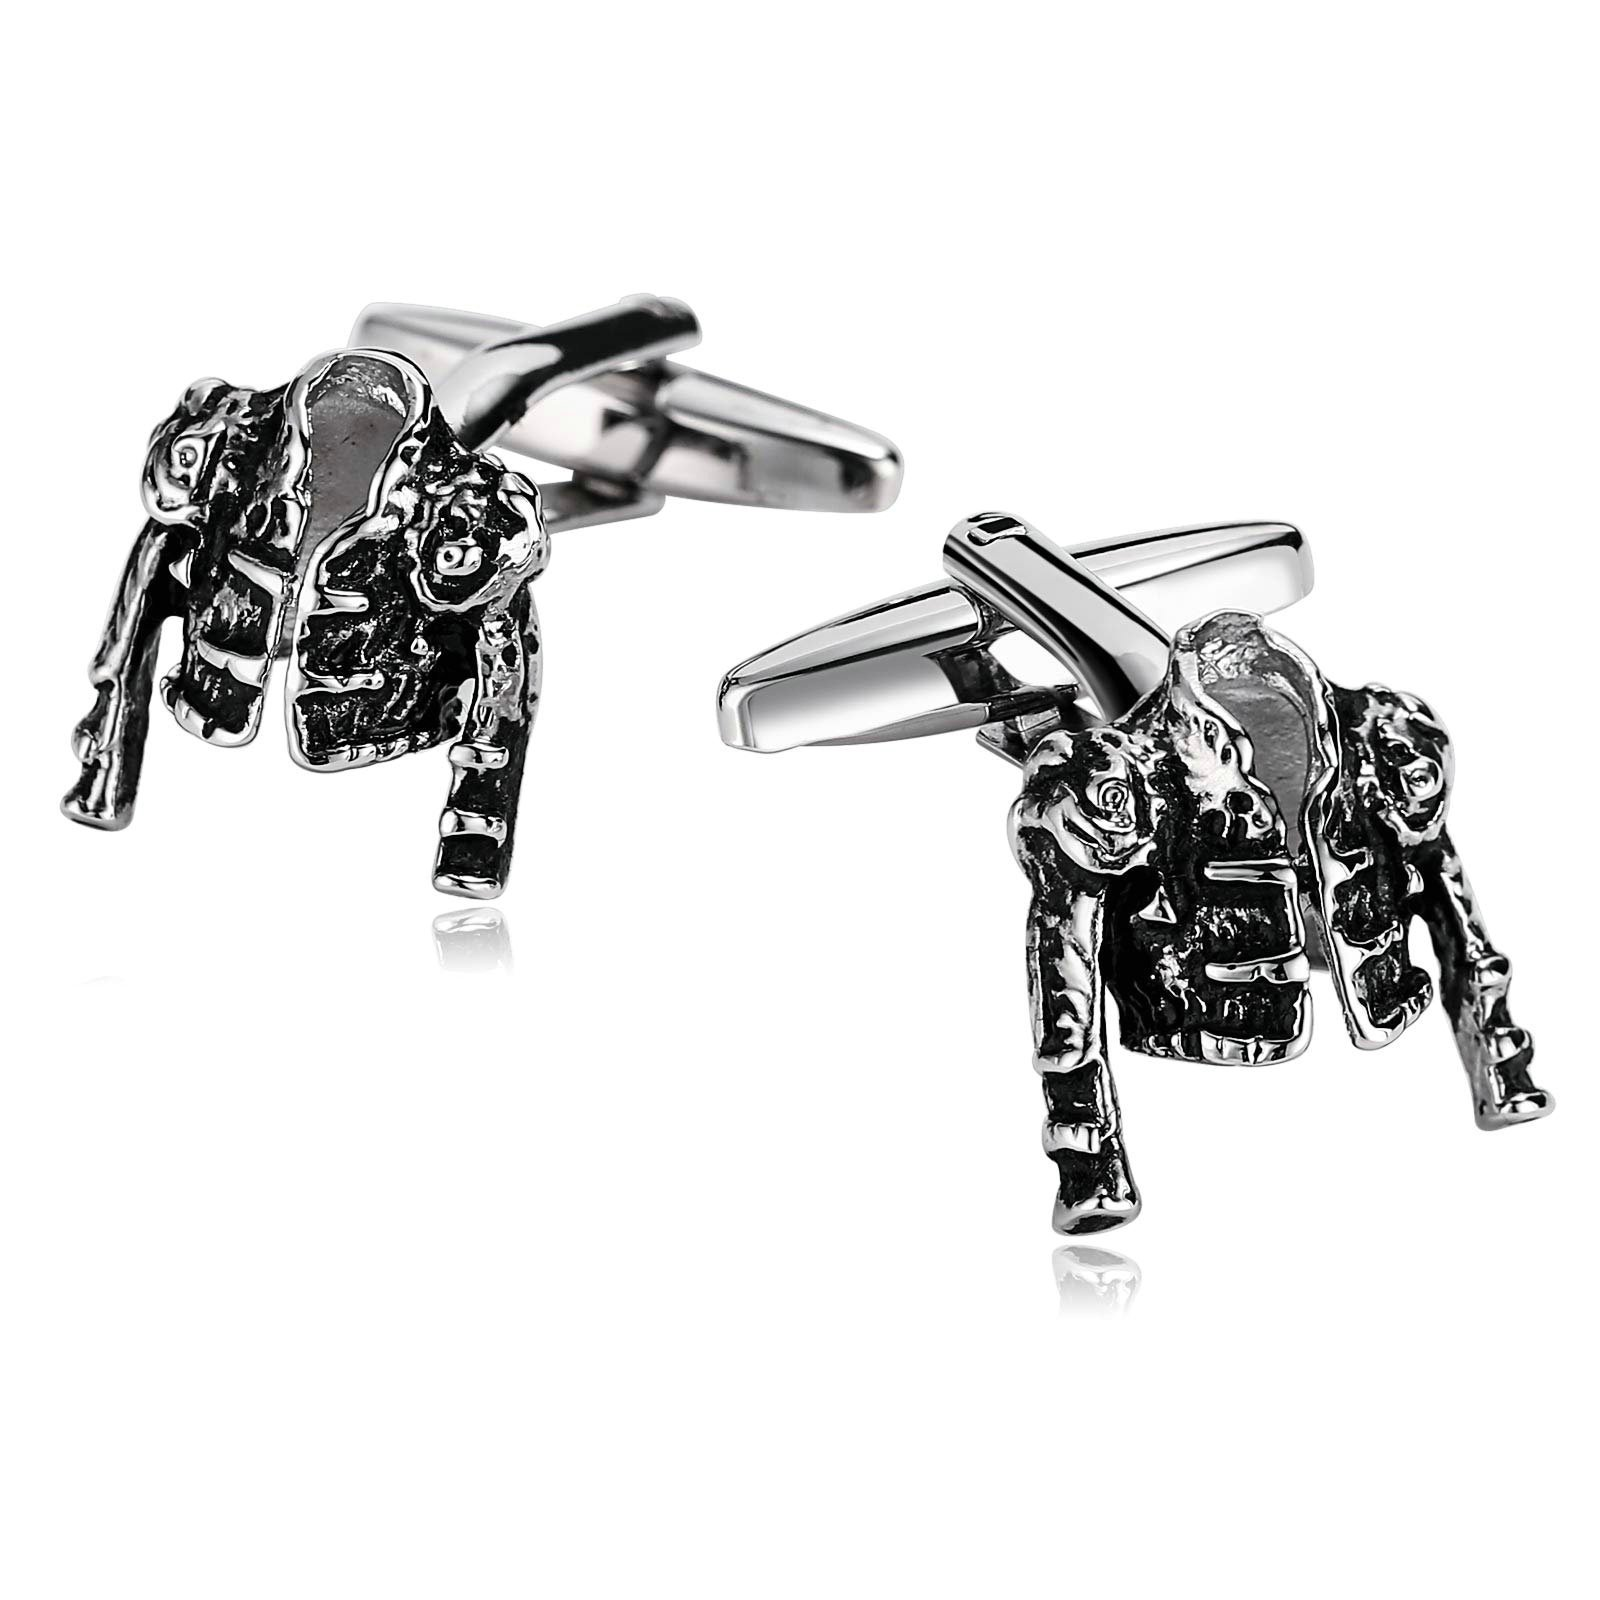 Gnzoe Stainless Steel Men's Shirt Cuff Links Business Wedding Clothes Jacket Vest Silver Black